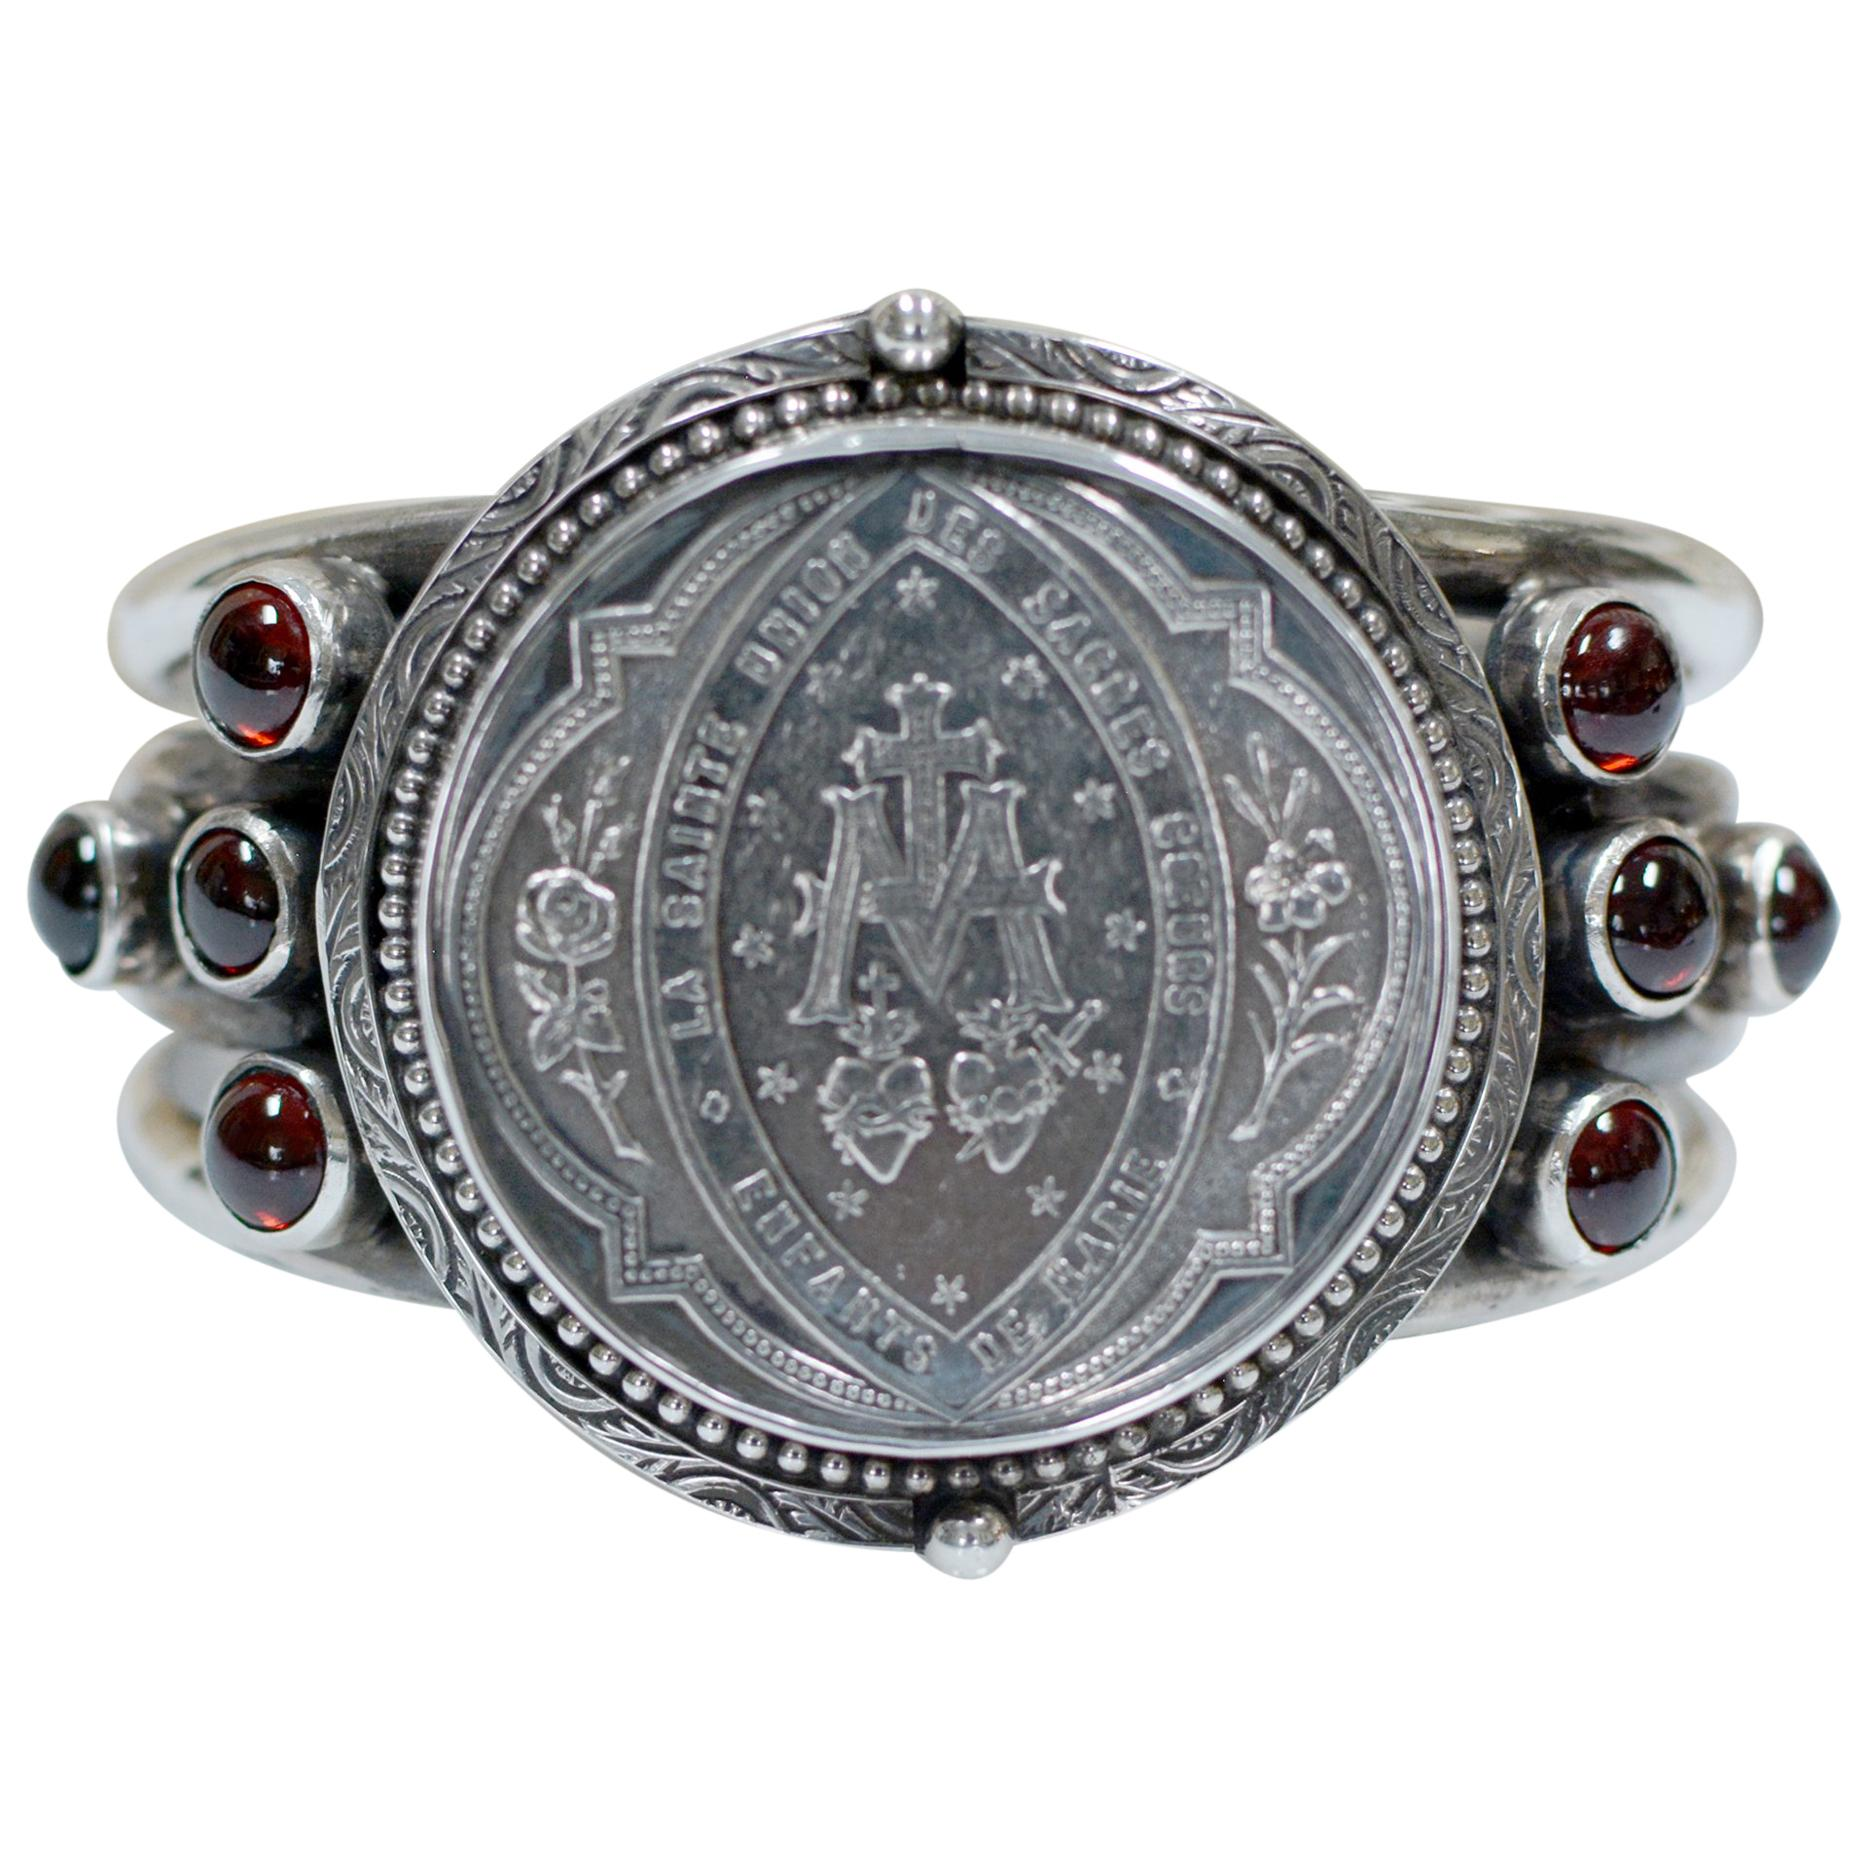 Jill Garber Antique French Sacred Heart Medal Cuff Bracelet with Natural Garnets